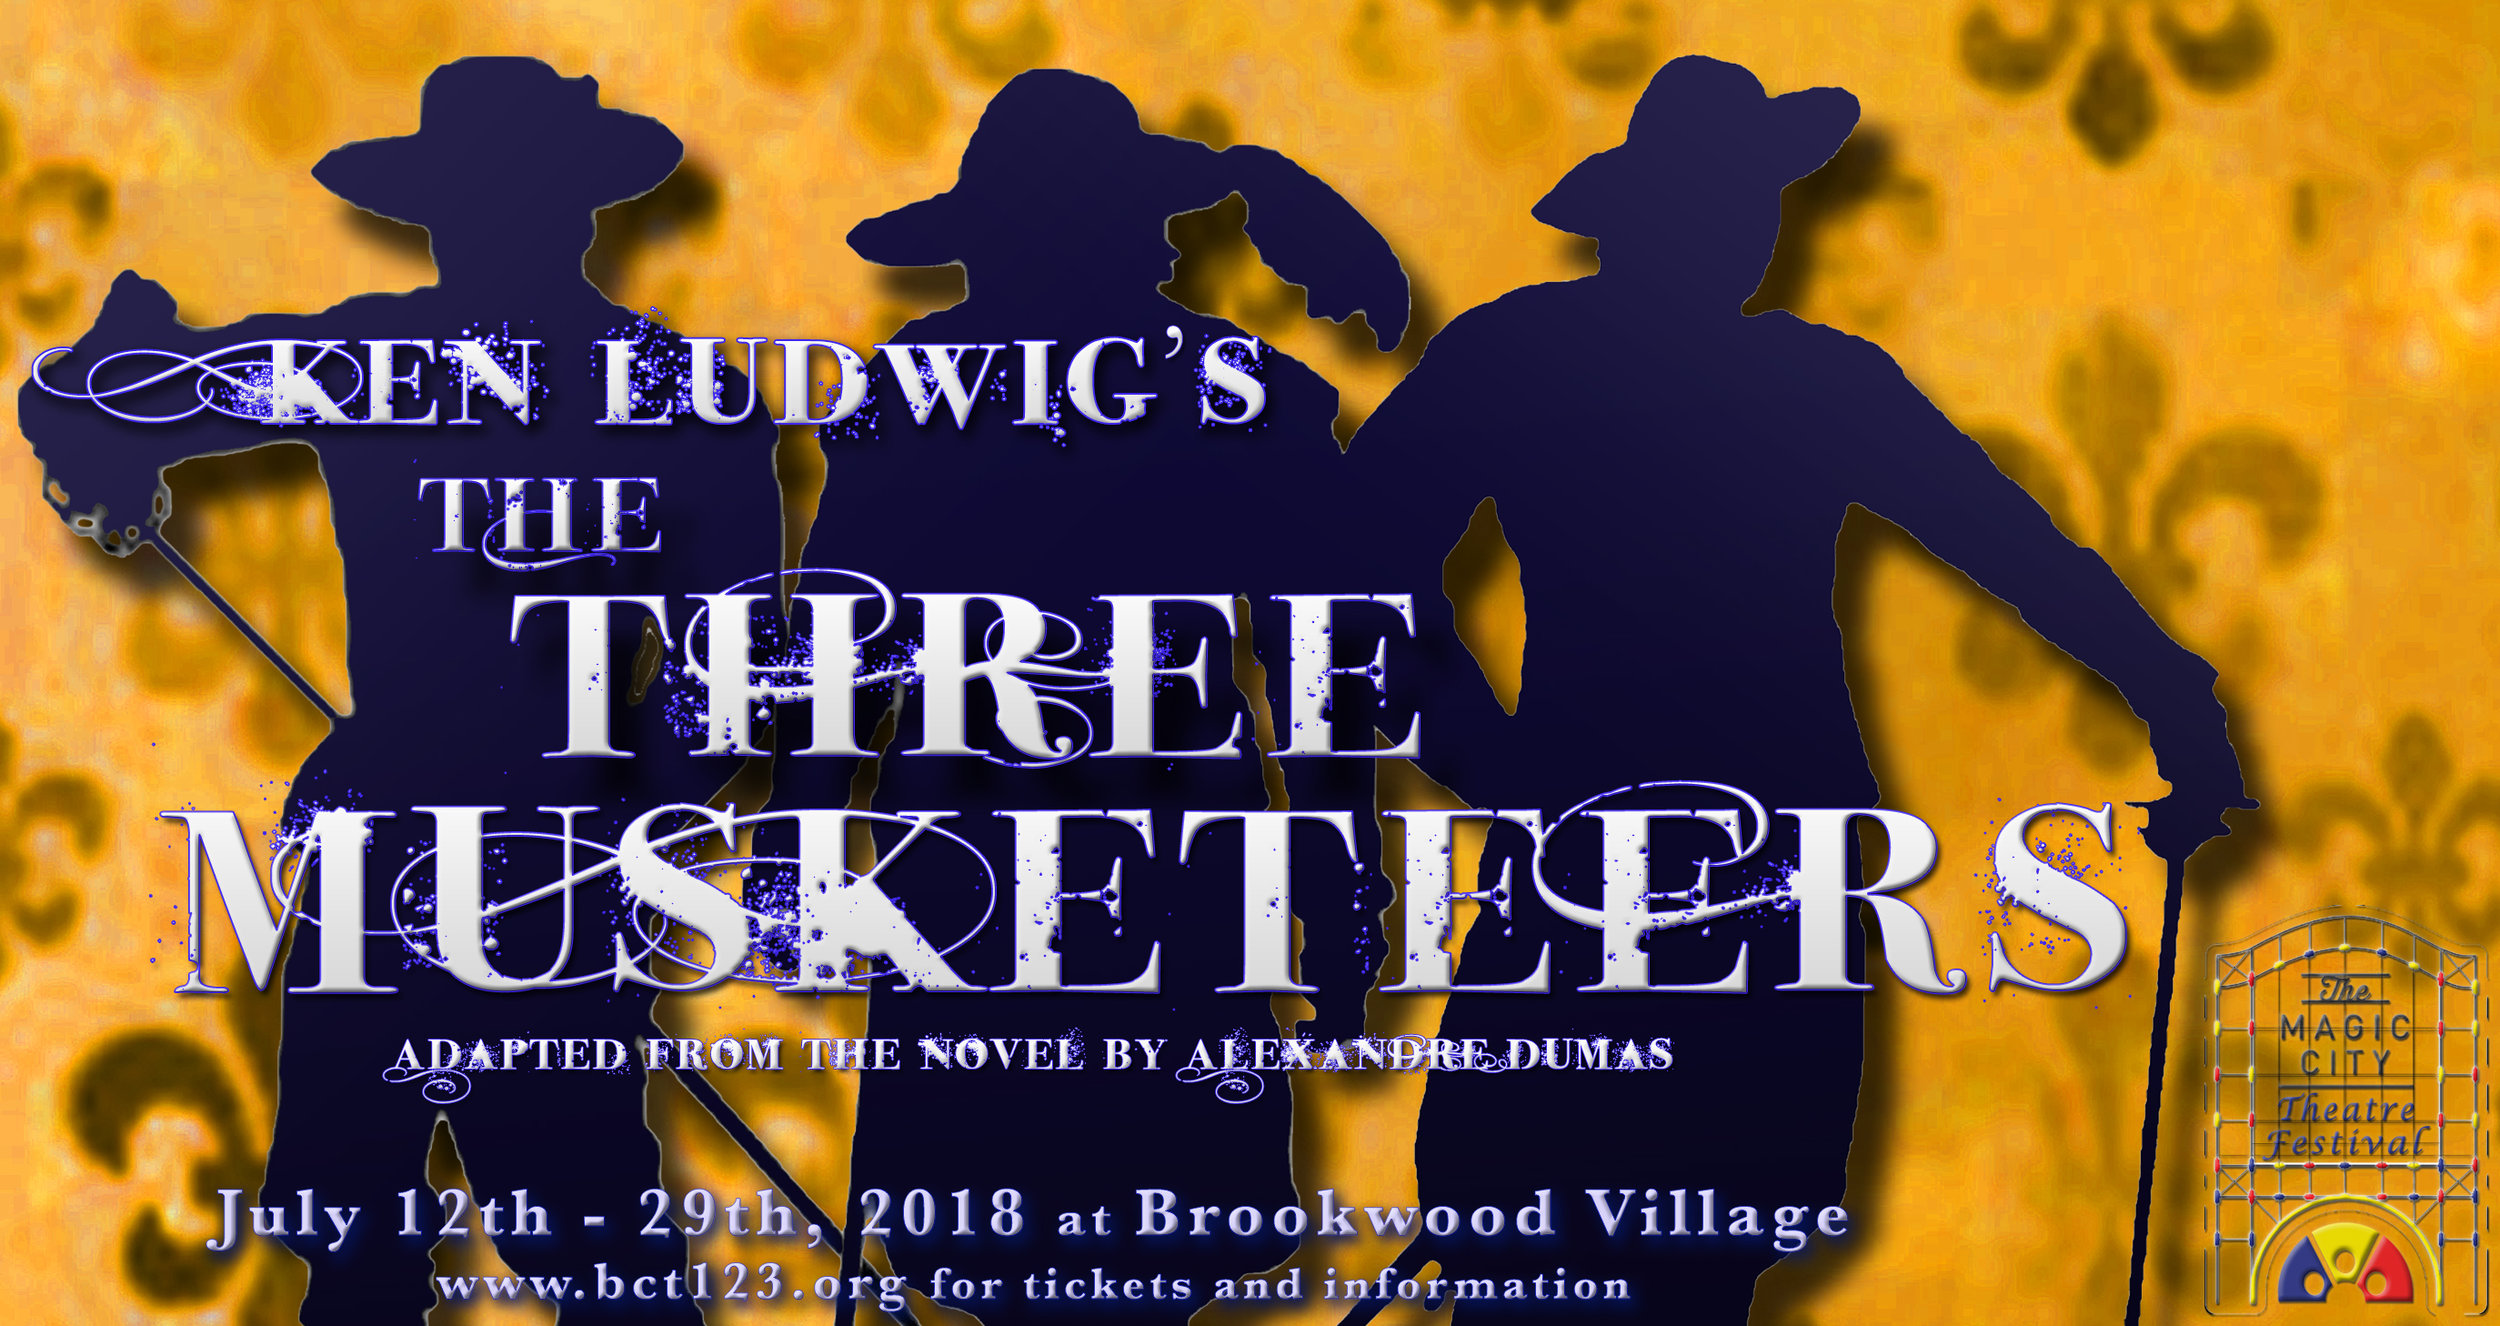 Ken Ludwig's  The Three Musketeers  will play at Brookwood Village July 12th - 29th. Wednesdays - Saturdays at 7:00pm. Saturdays and Sundays at 2:00pm. Recommended for ages 8+